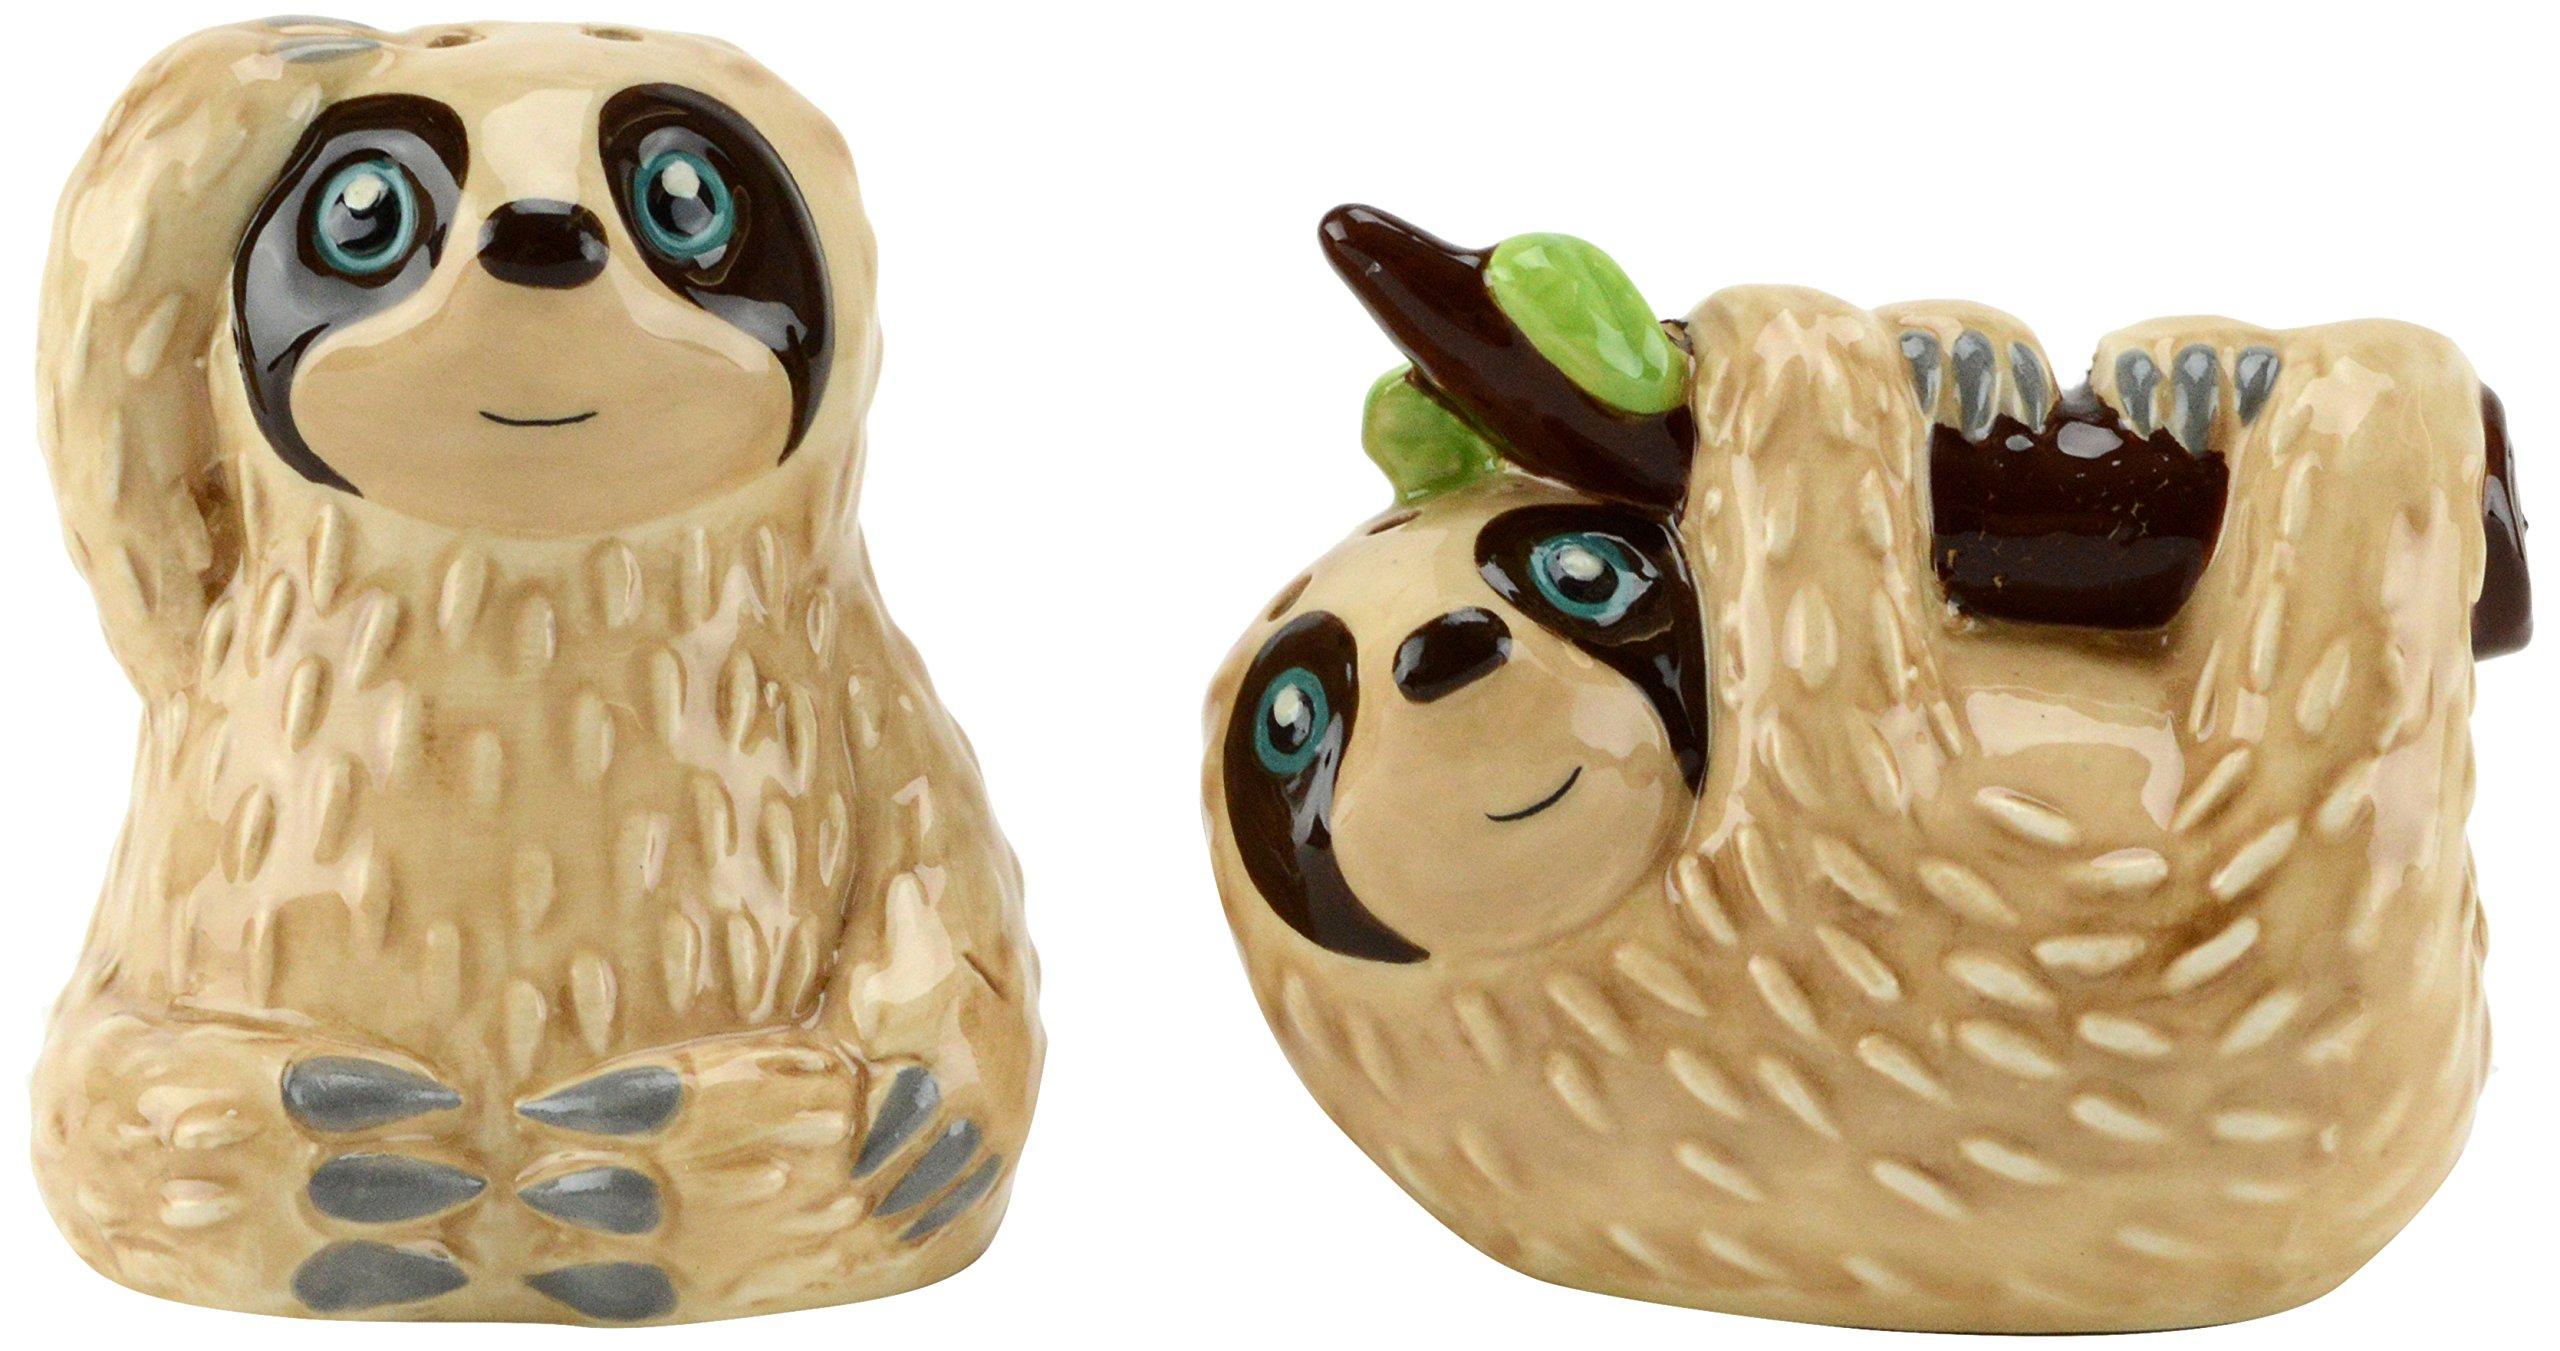 Boston Warehouse 38424 Slow Sloth Salt and Pepper Shakers